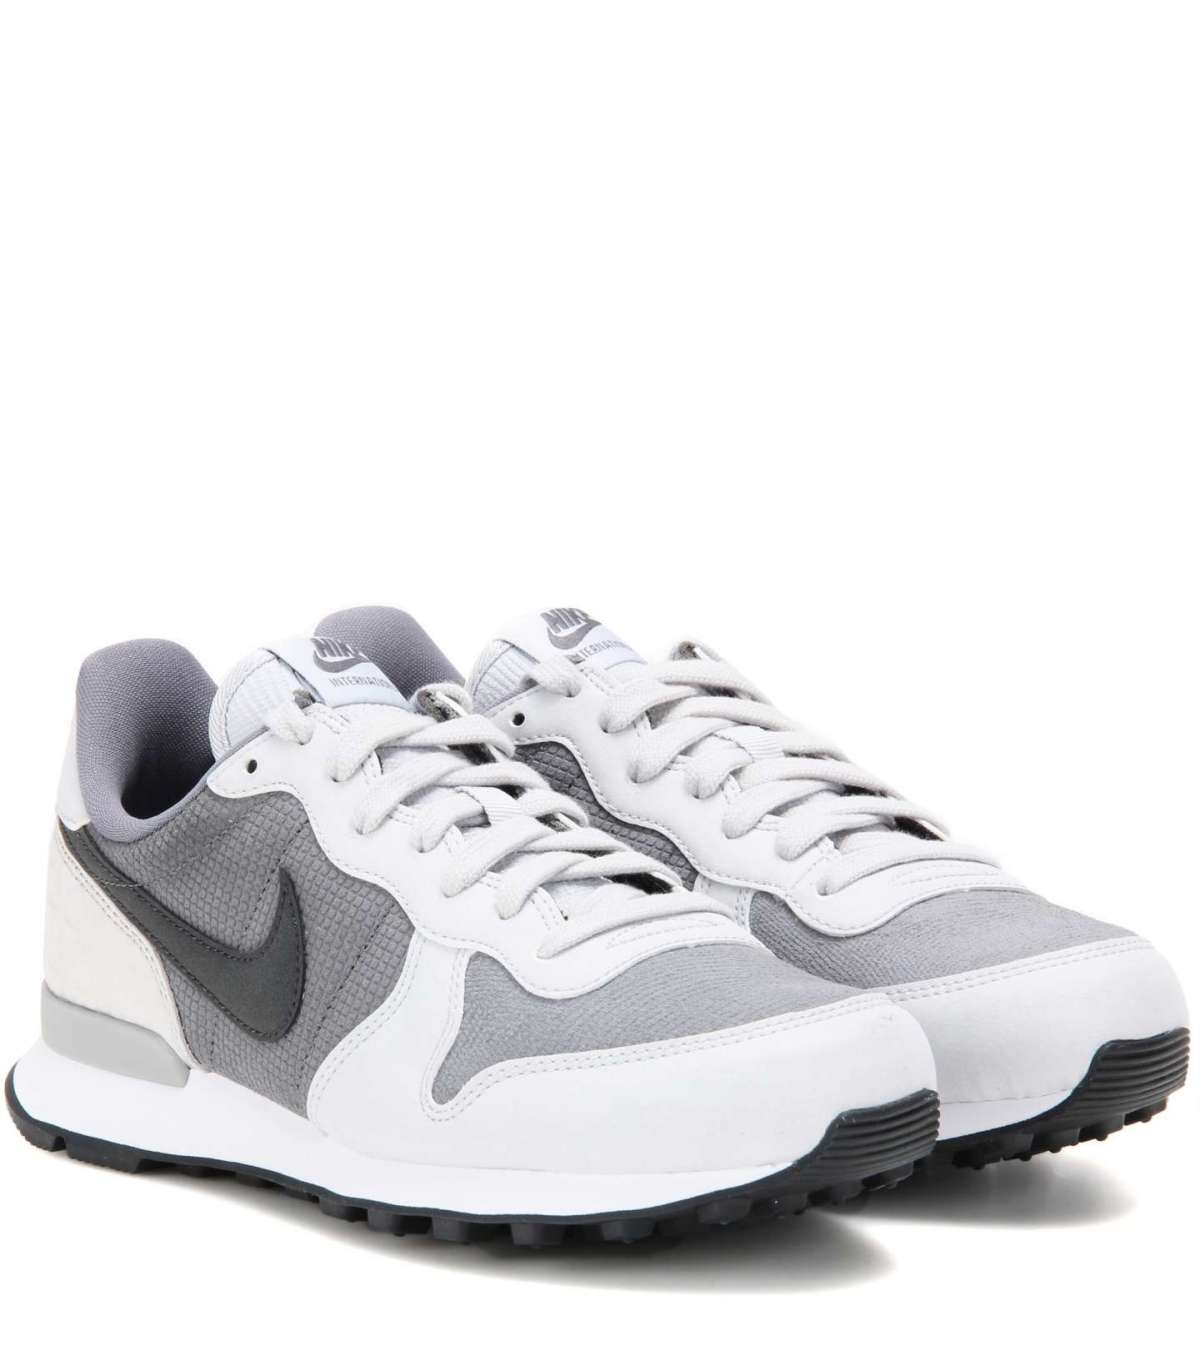 Sneakers grigie e bianche Nike